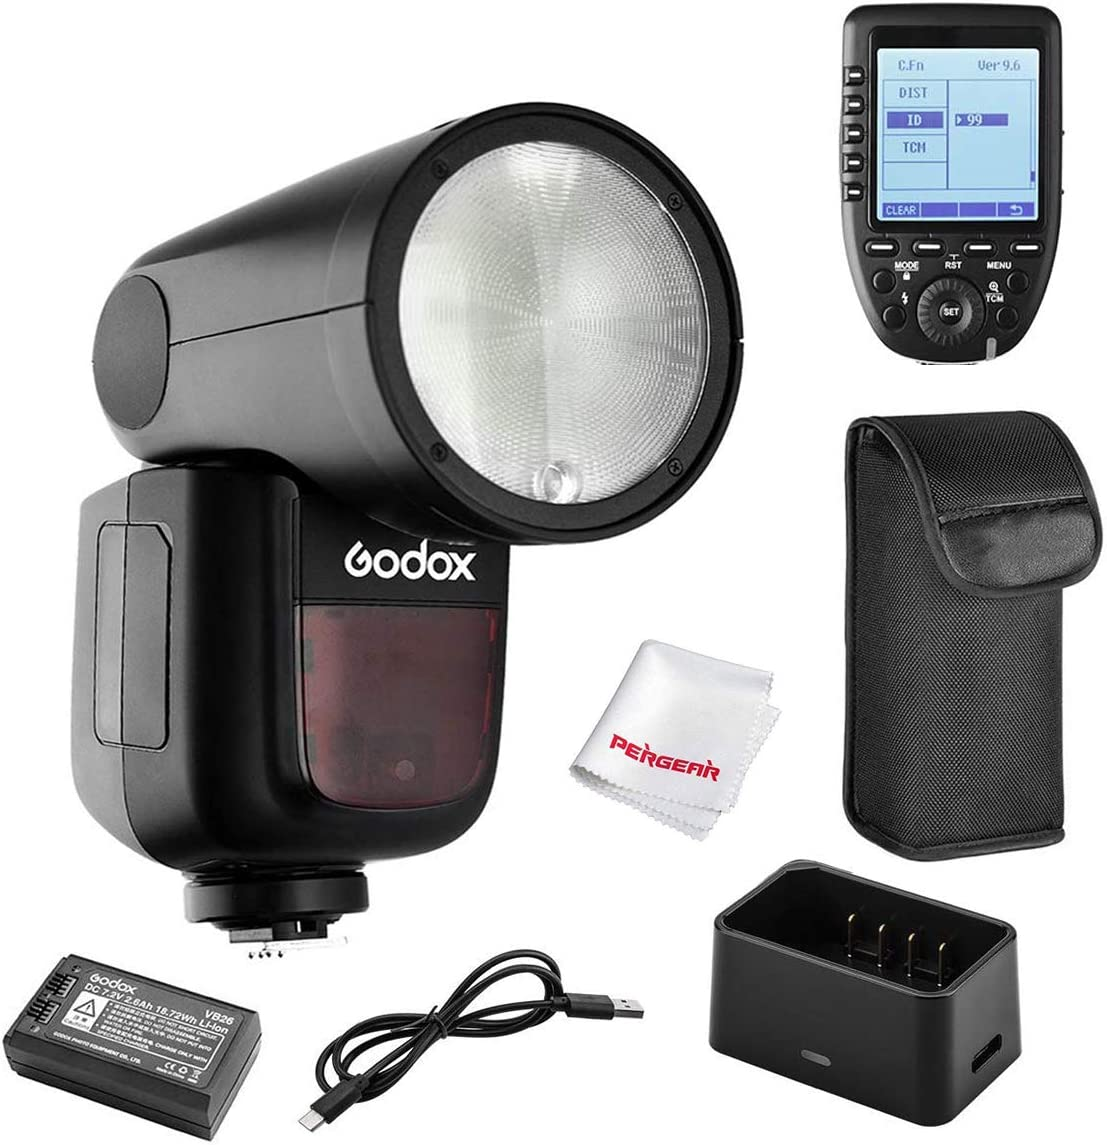 Godox V1-C Flash with Godox Xpro-C TTL Flash Trigger for Canon, 76Ws 2.4G TTL Round Head Flash Speedlight, 1/8000 HSS, 1.5 sec. Recycle Time, 2600mAh Lithium Battery, 10 Level LED Modeling Lamp